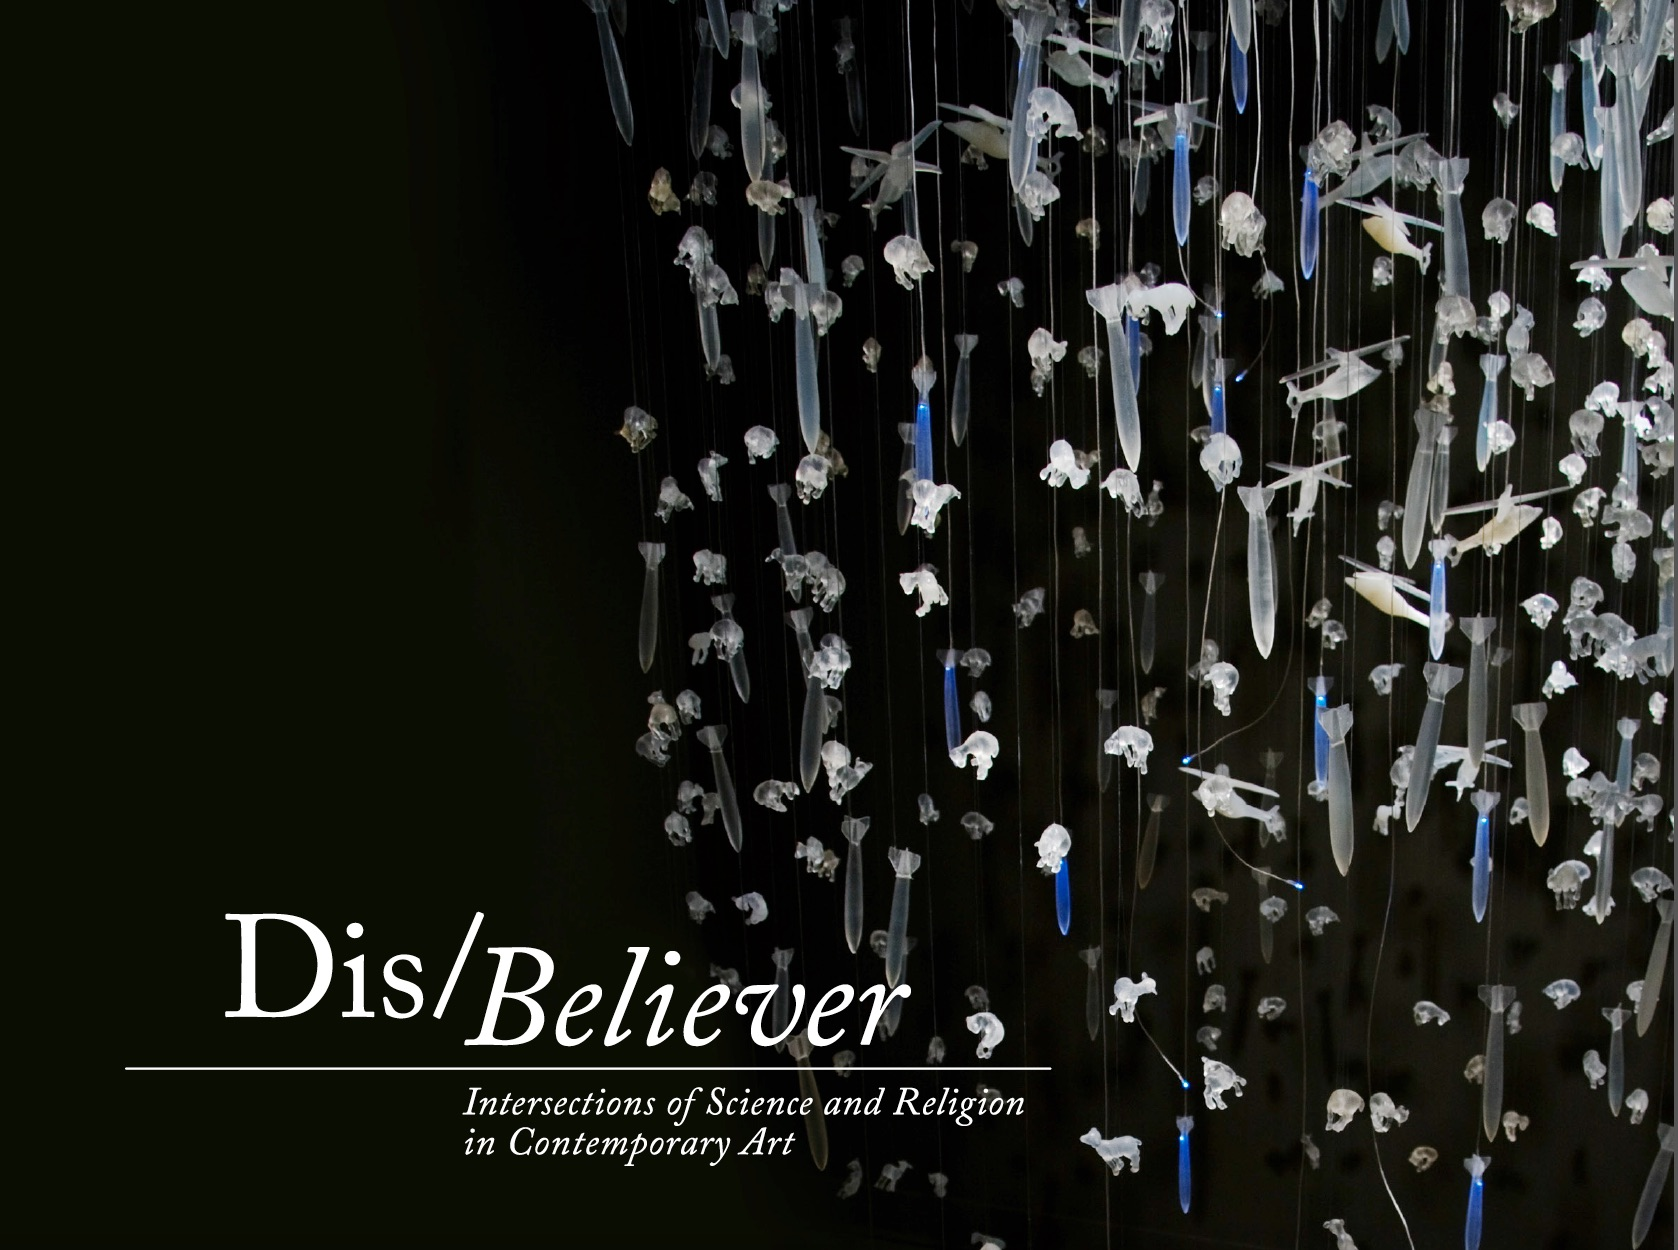 """Dis/Believer  gives focus to contemporary artists who engage in ideas and moments when science and religion intersect. The concept is inspired by the ever-deepening conflict surrounding the reconciliation of scientific theory and spiritual faith, due to an explosive rebirth of religious fundamentalism and rivaling exponential discoveries in science. Debates on the compatibility of the natural and supernatural are raging in many forms of media and often feature scientist versus theologian, fundamentalist against atheist, and evolutionist opposed to creationist. The resulting dialogue is illuminating, divisive and exhilarating.  Visual artists are grappling with this concern and expanding the discourse in provocative and enlightening directions.  Dis/Believer  gathers a diverse selection of media in a conversation that spans from the origins of life to ethics in biotechnology, and from predictions of apocalypse to technology's role in faith. The grouping of artists offers a fresh and fascinating perspective on the complex debate of science and religion.   Participating artists : CarianaCarianne,  Compassionate Action Enterprises,  Teresa Diehl,  The Glue Society,  Industry of the Ordinary,  Kysa Johnson,  Marci MacGuffie , Joe Meiser, Trong Nguyen,  Joshua Thorson. Sandra Yagi      Related programming:  Panel Discussion, """"Evidence of Things Un/Seen:The Art of Reconciling Science& Religion""""; and a performance by Industry of the Ordinary,  Ten (Reprise),  at the opening reception.  Curated by Neysa Page-Lieberman.  Click below to see the exhibition catalogue. (Contact me to request a hard copy.) Includes essay by philosopher Stephen Asma."""